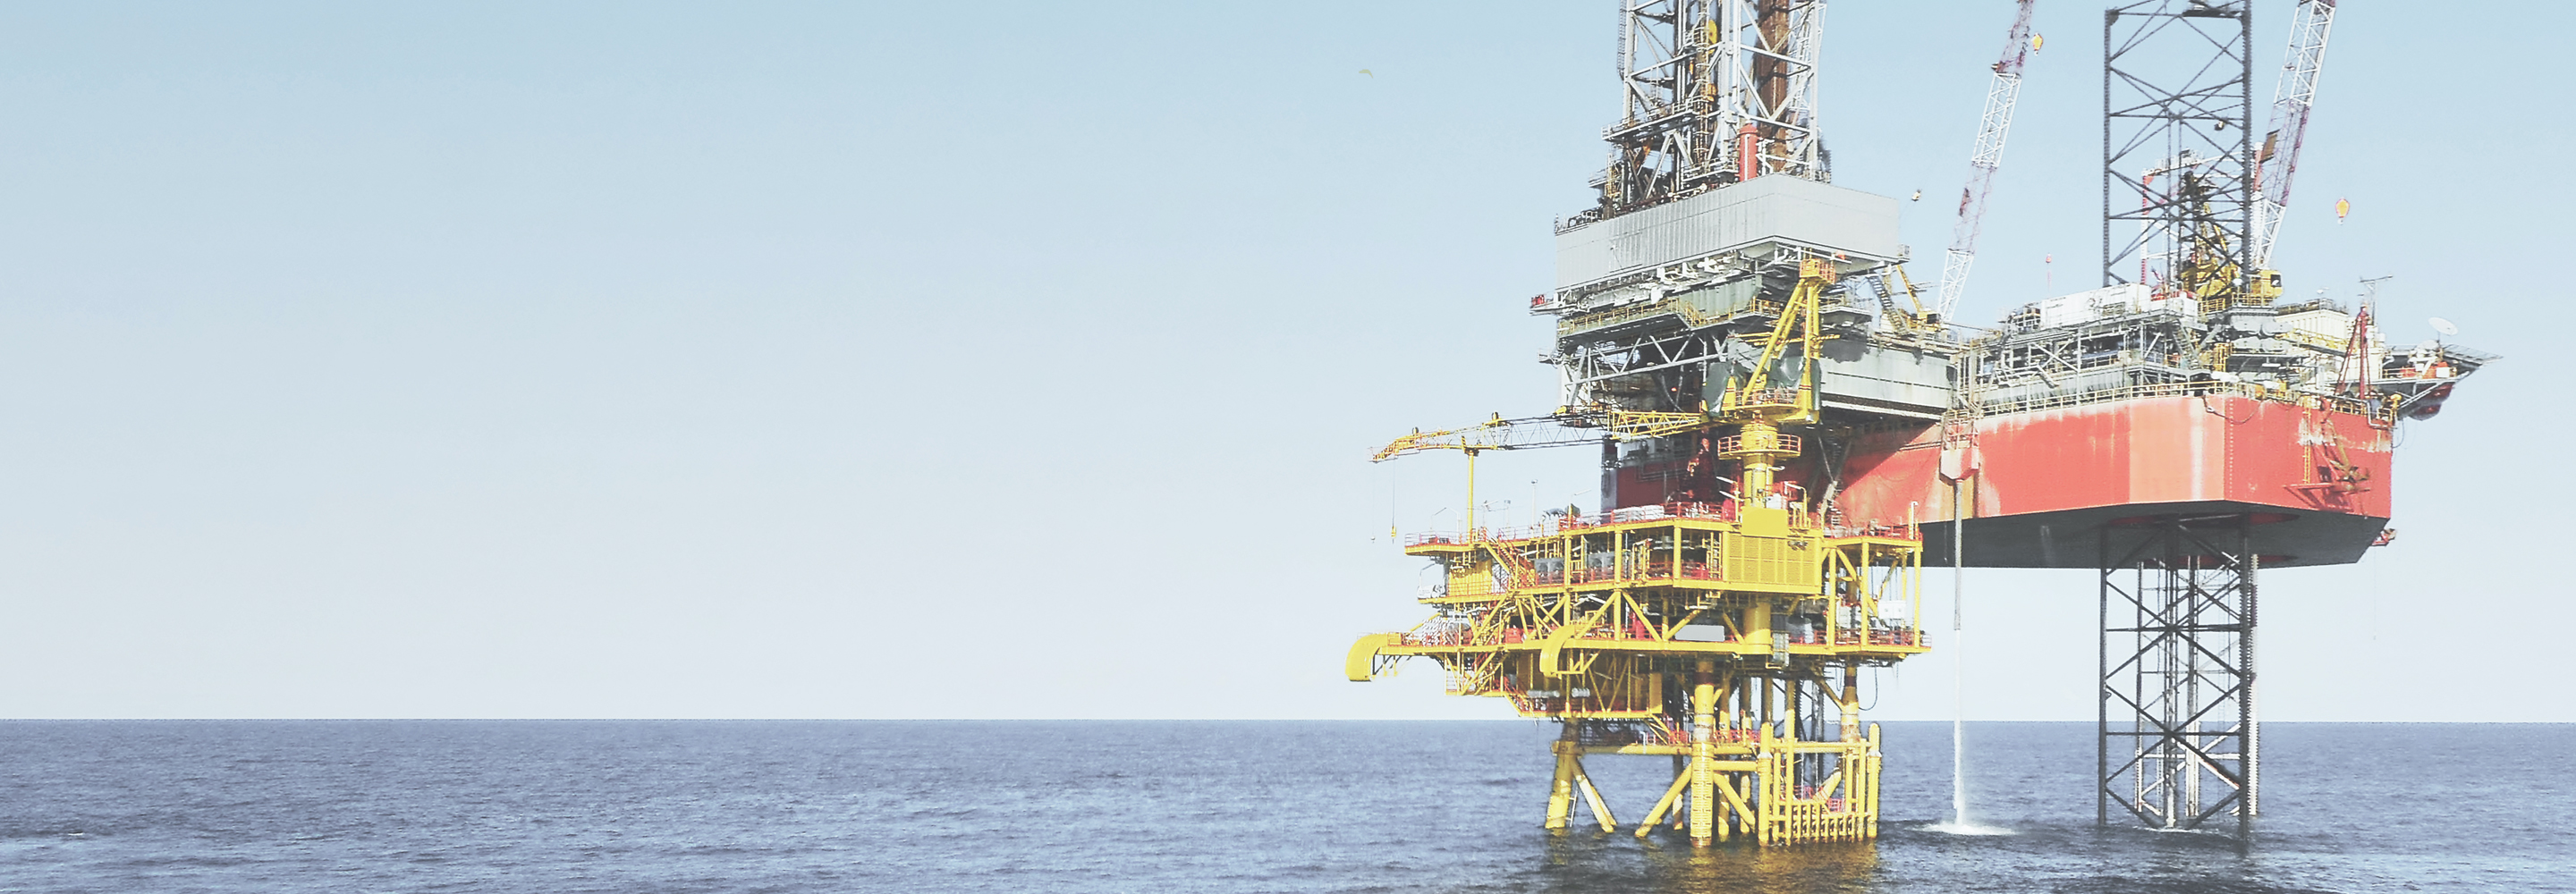 platform in the ocean to collect gas